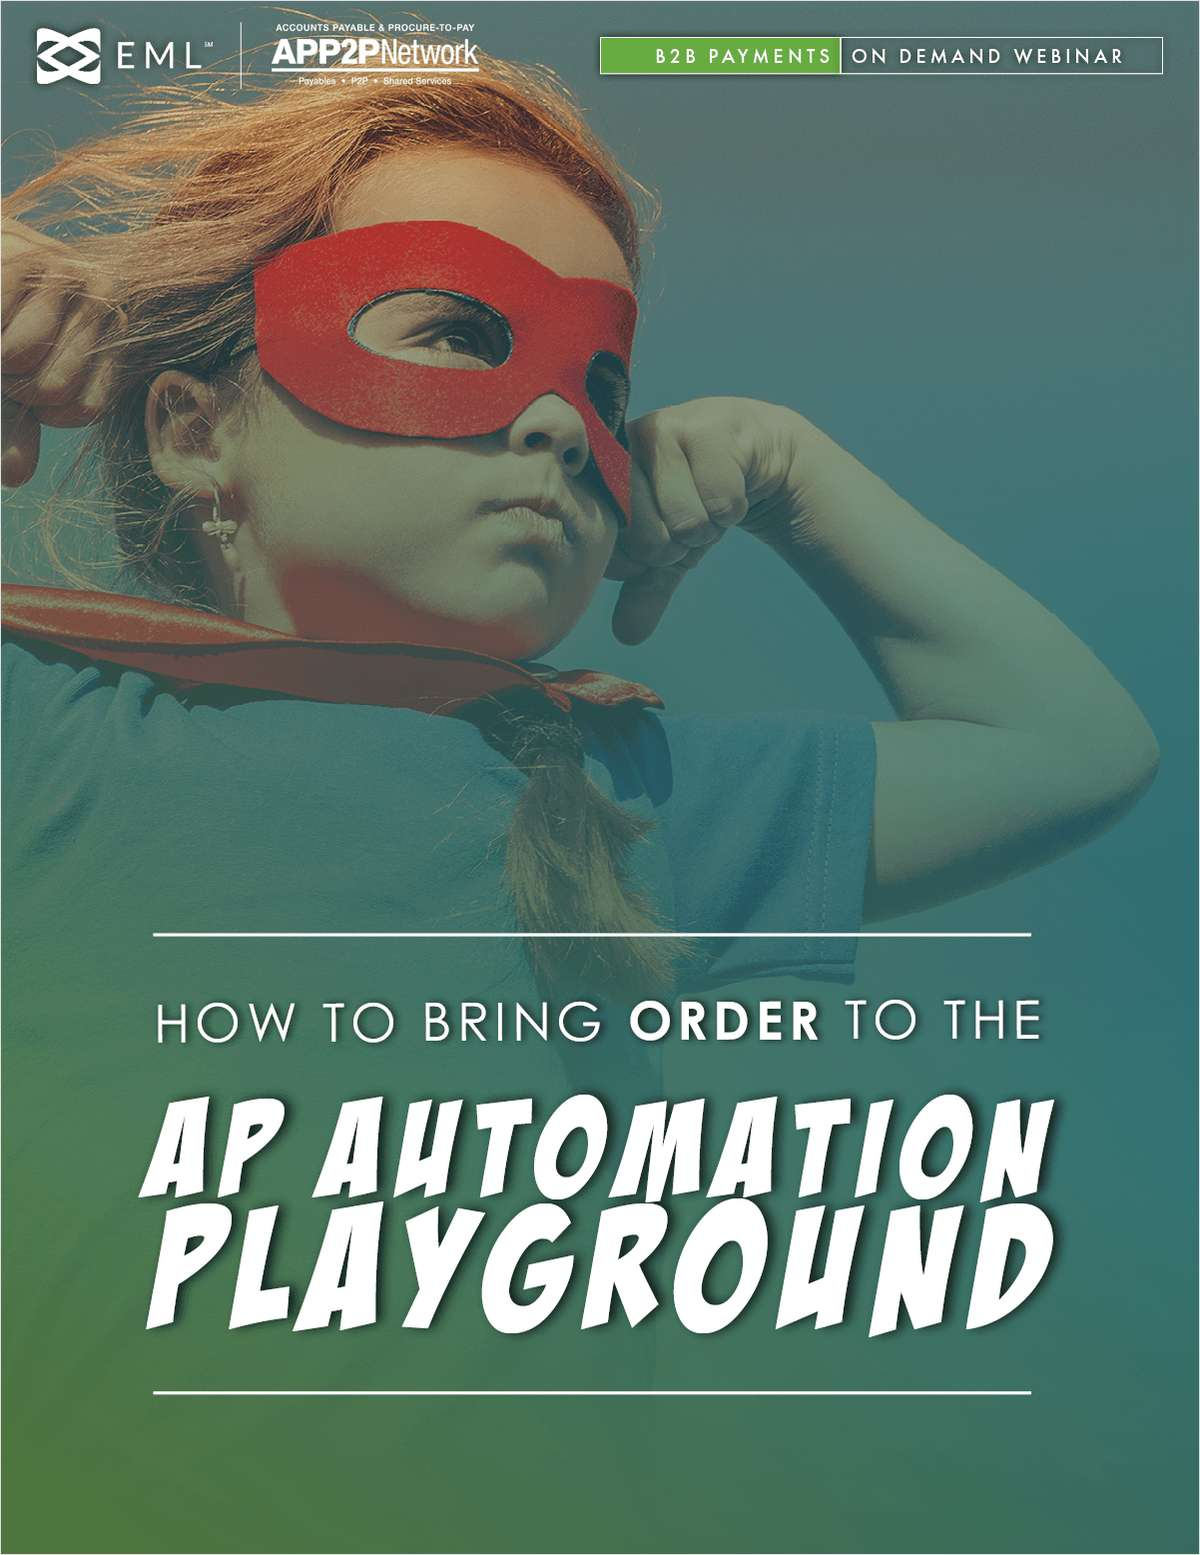 Recorded Webinar: How to Bring Order to the AP Automation Playground